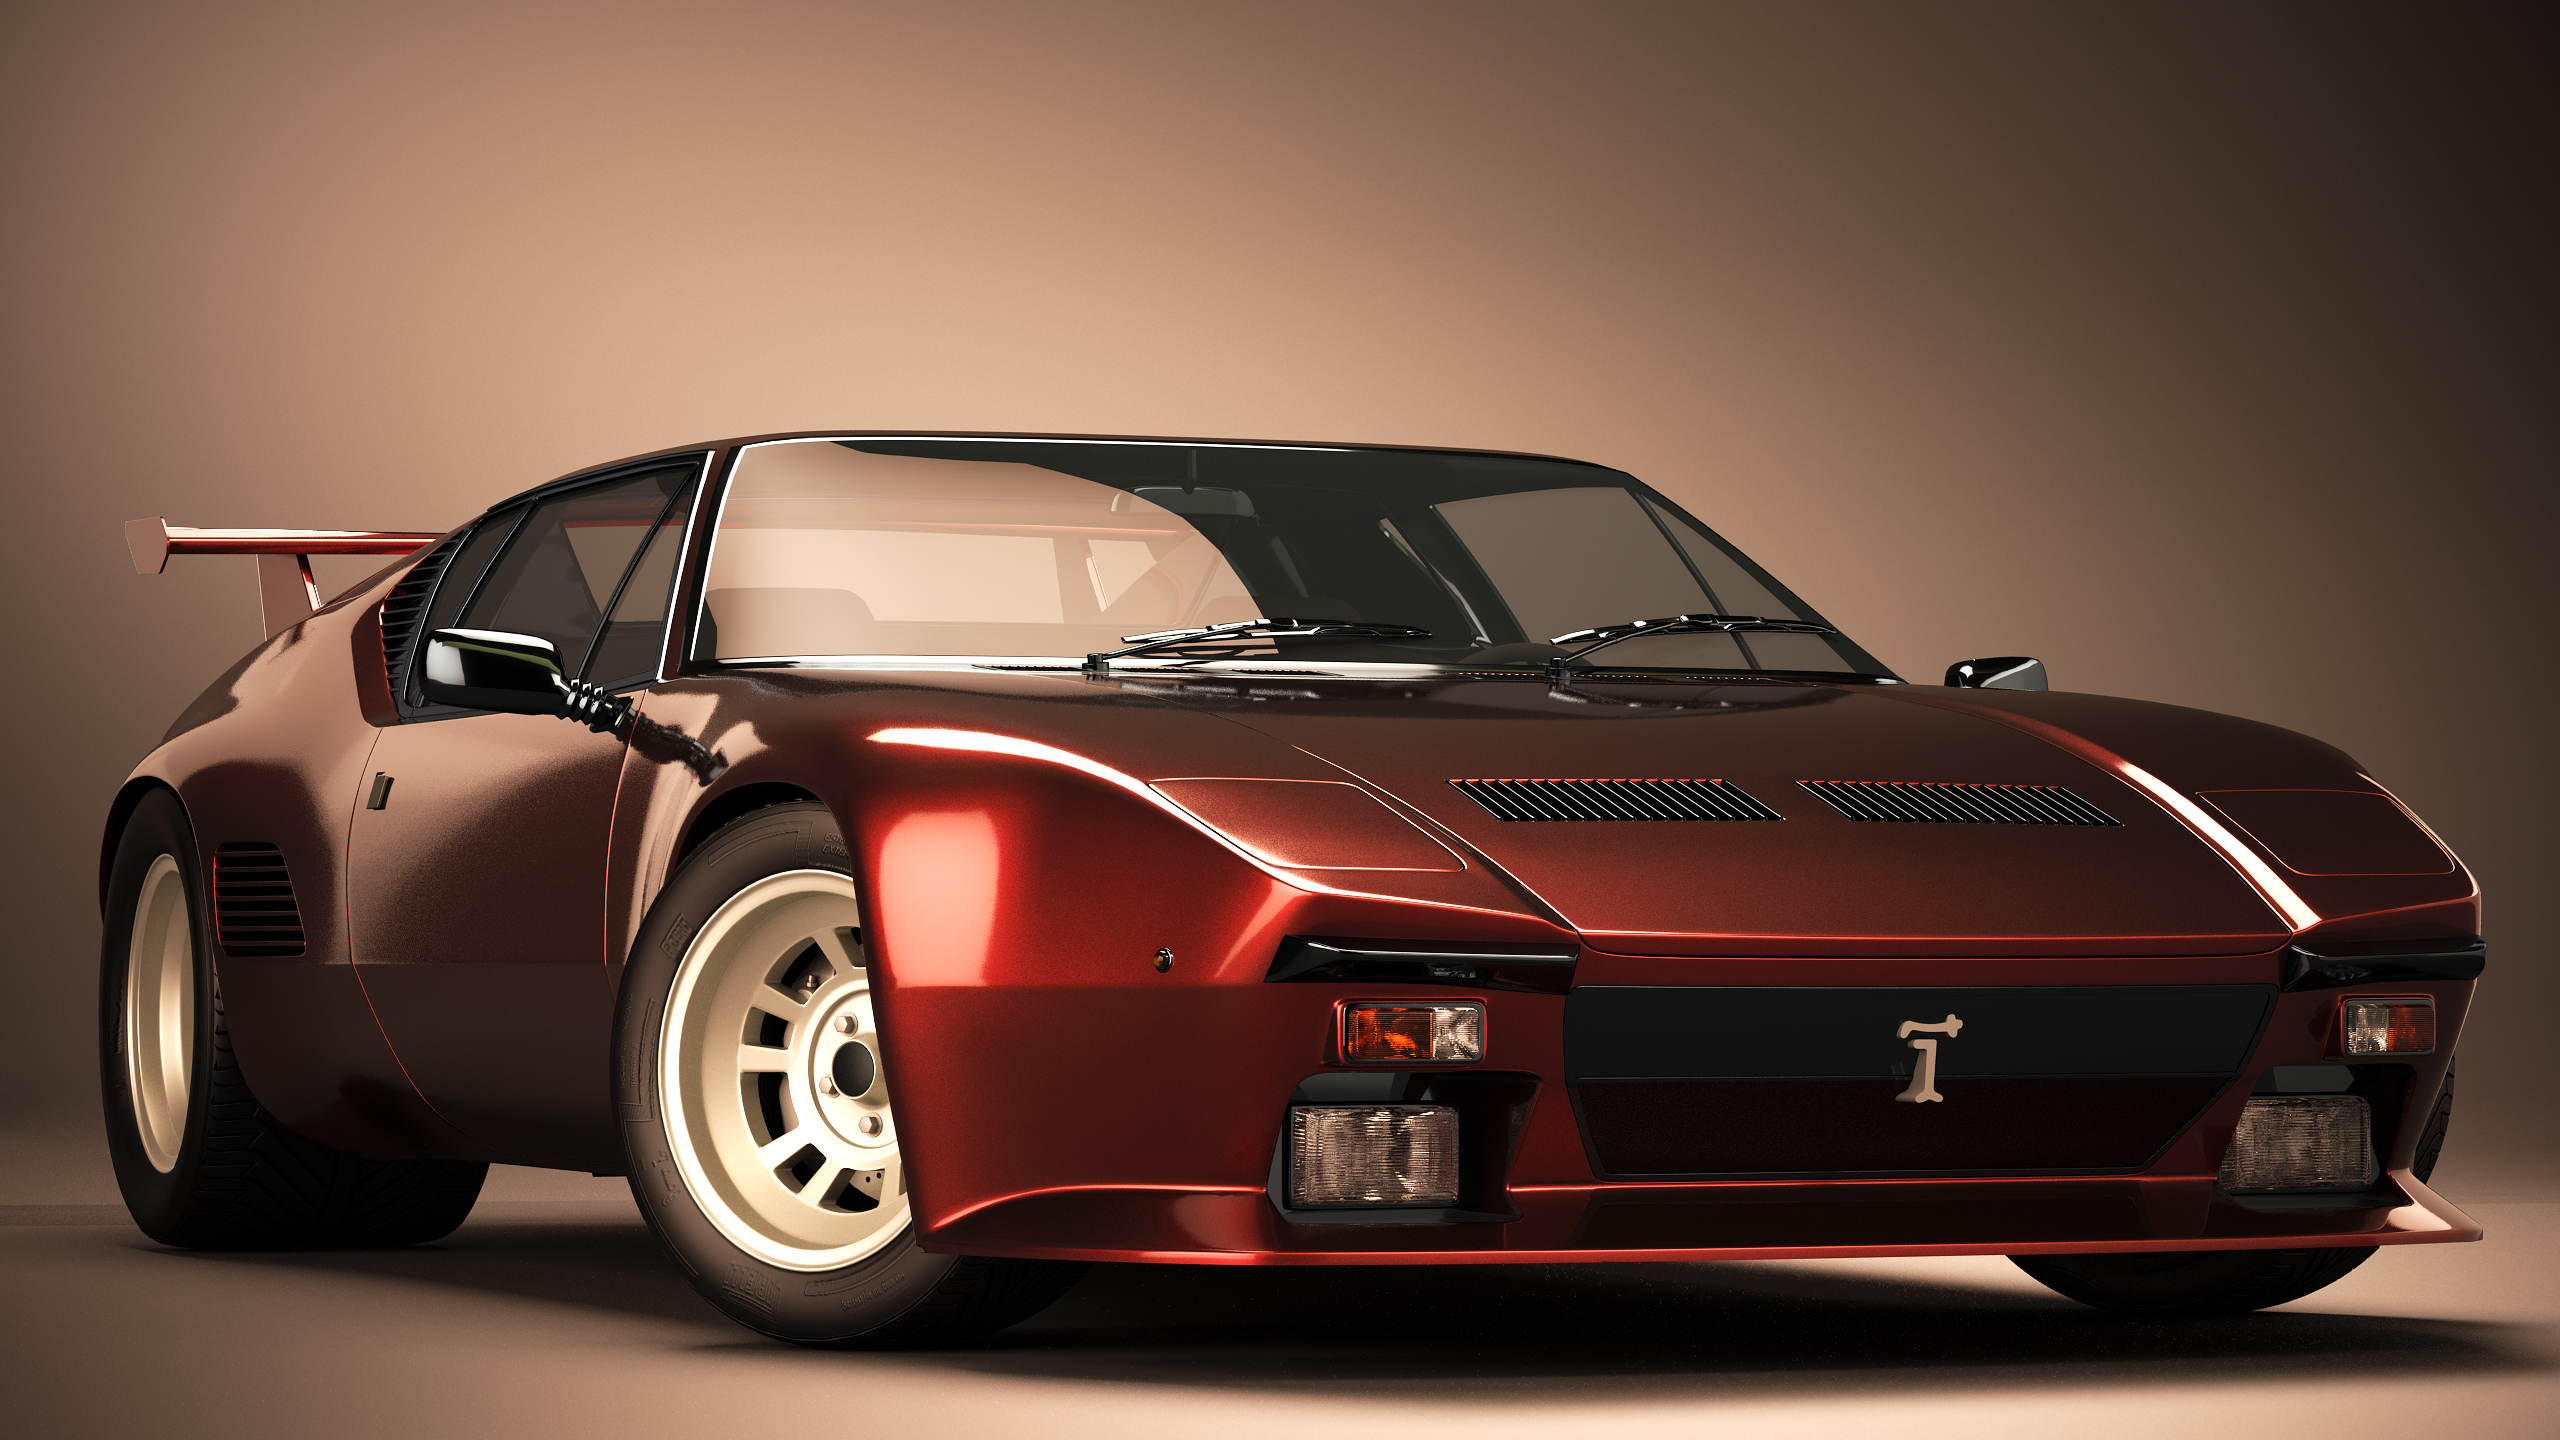 1971 de tomaso pantera gt5 by nancorocks on deviantart. Black Bedroom Furniture Sets. Home Design Ideas